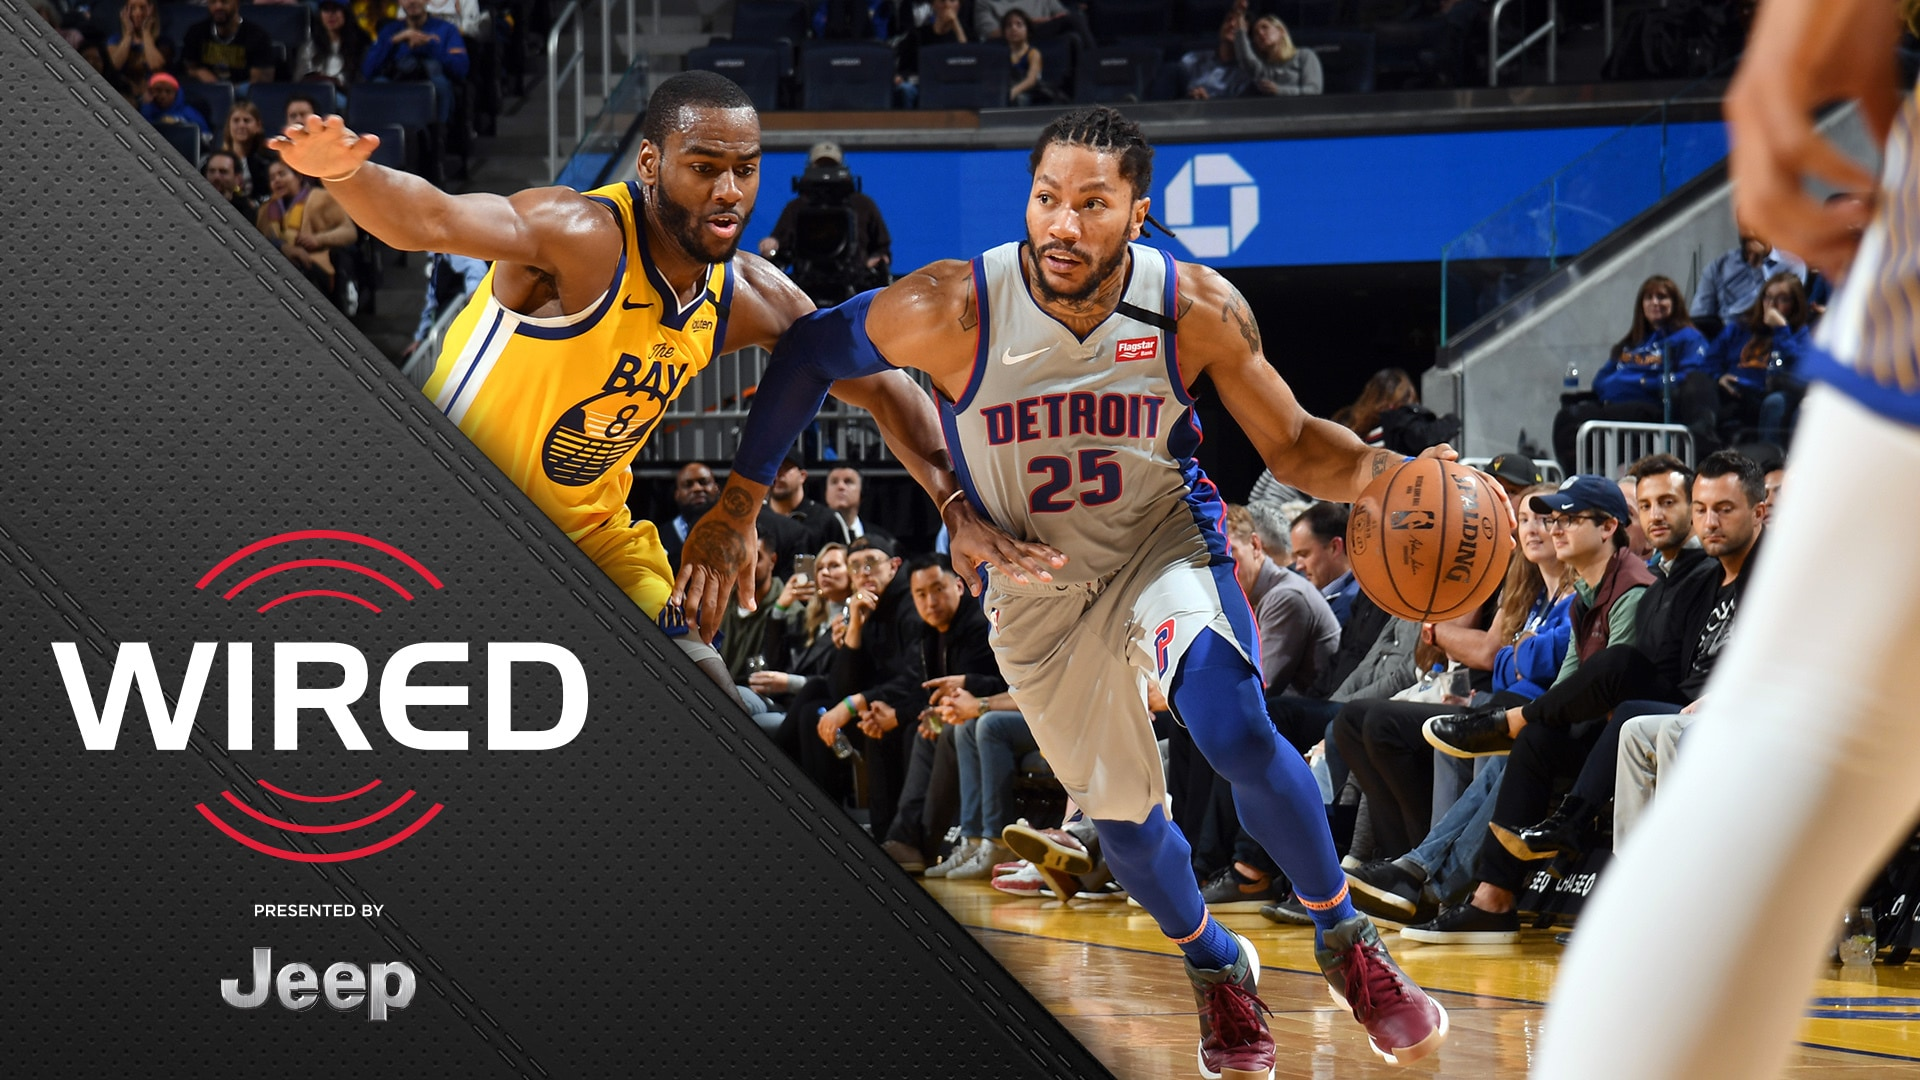 Wired, presented by Jeep: Pistons vs Golden State Warriors